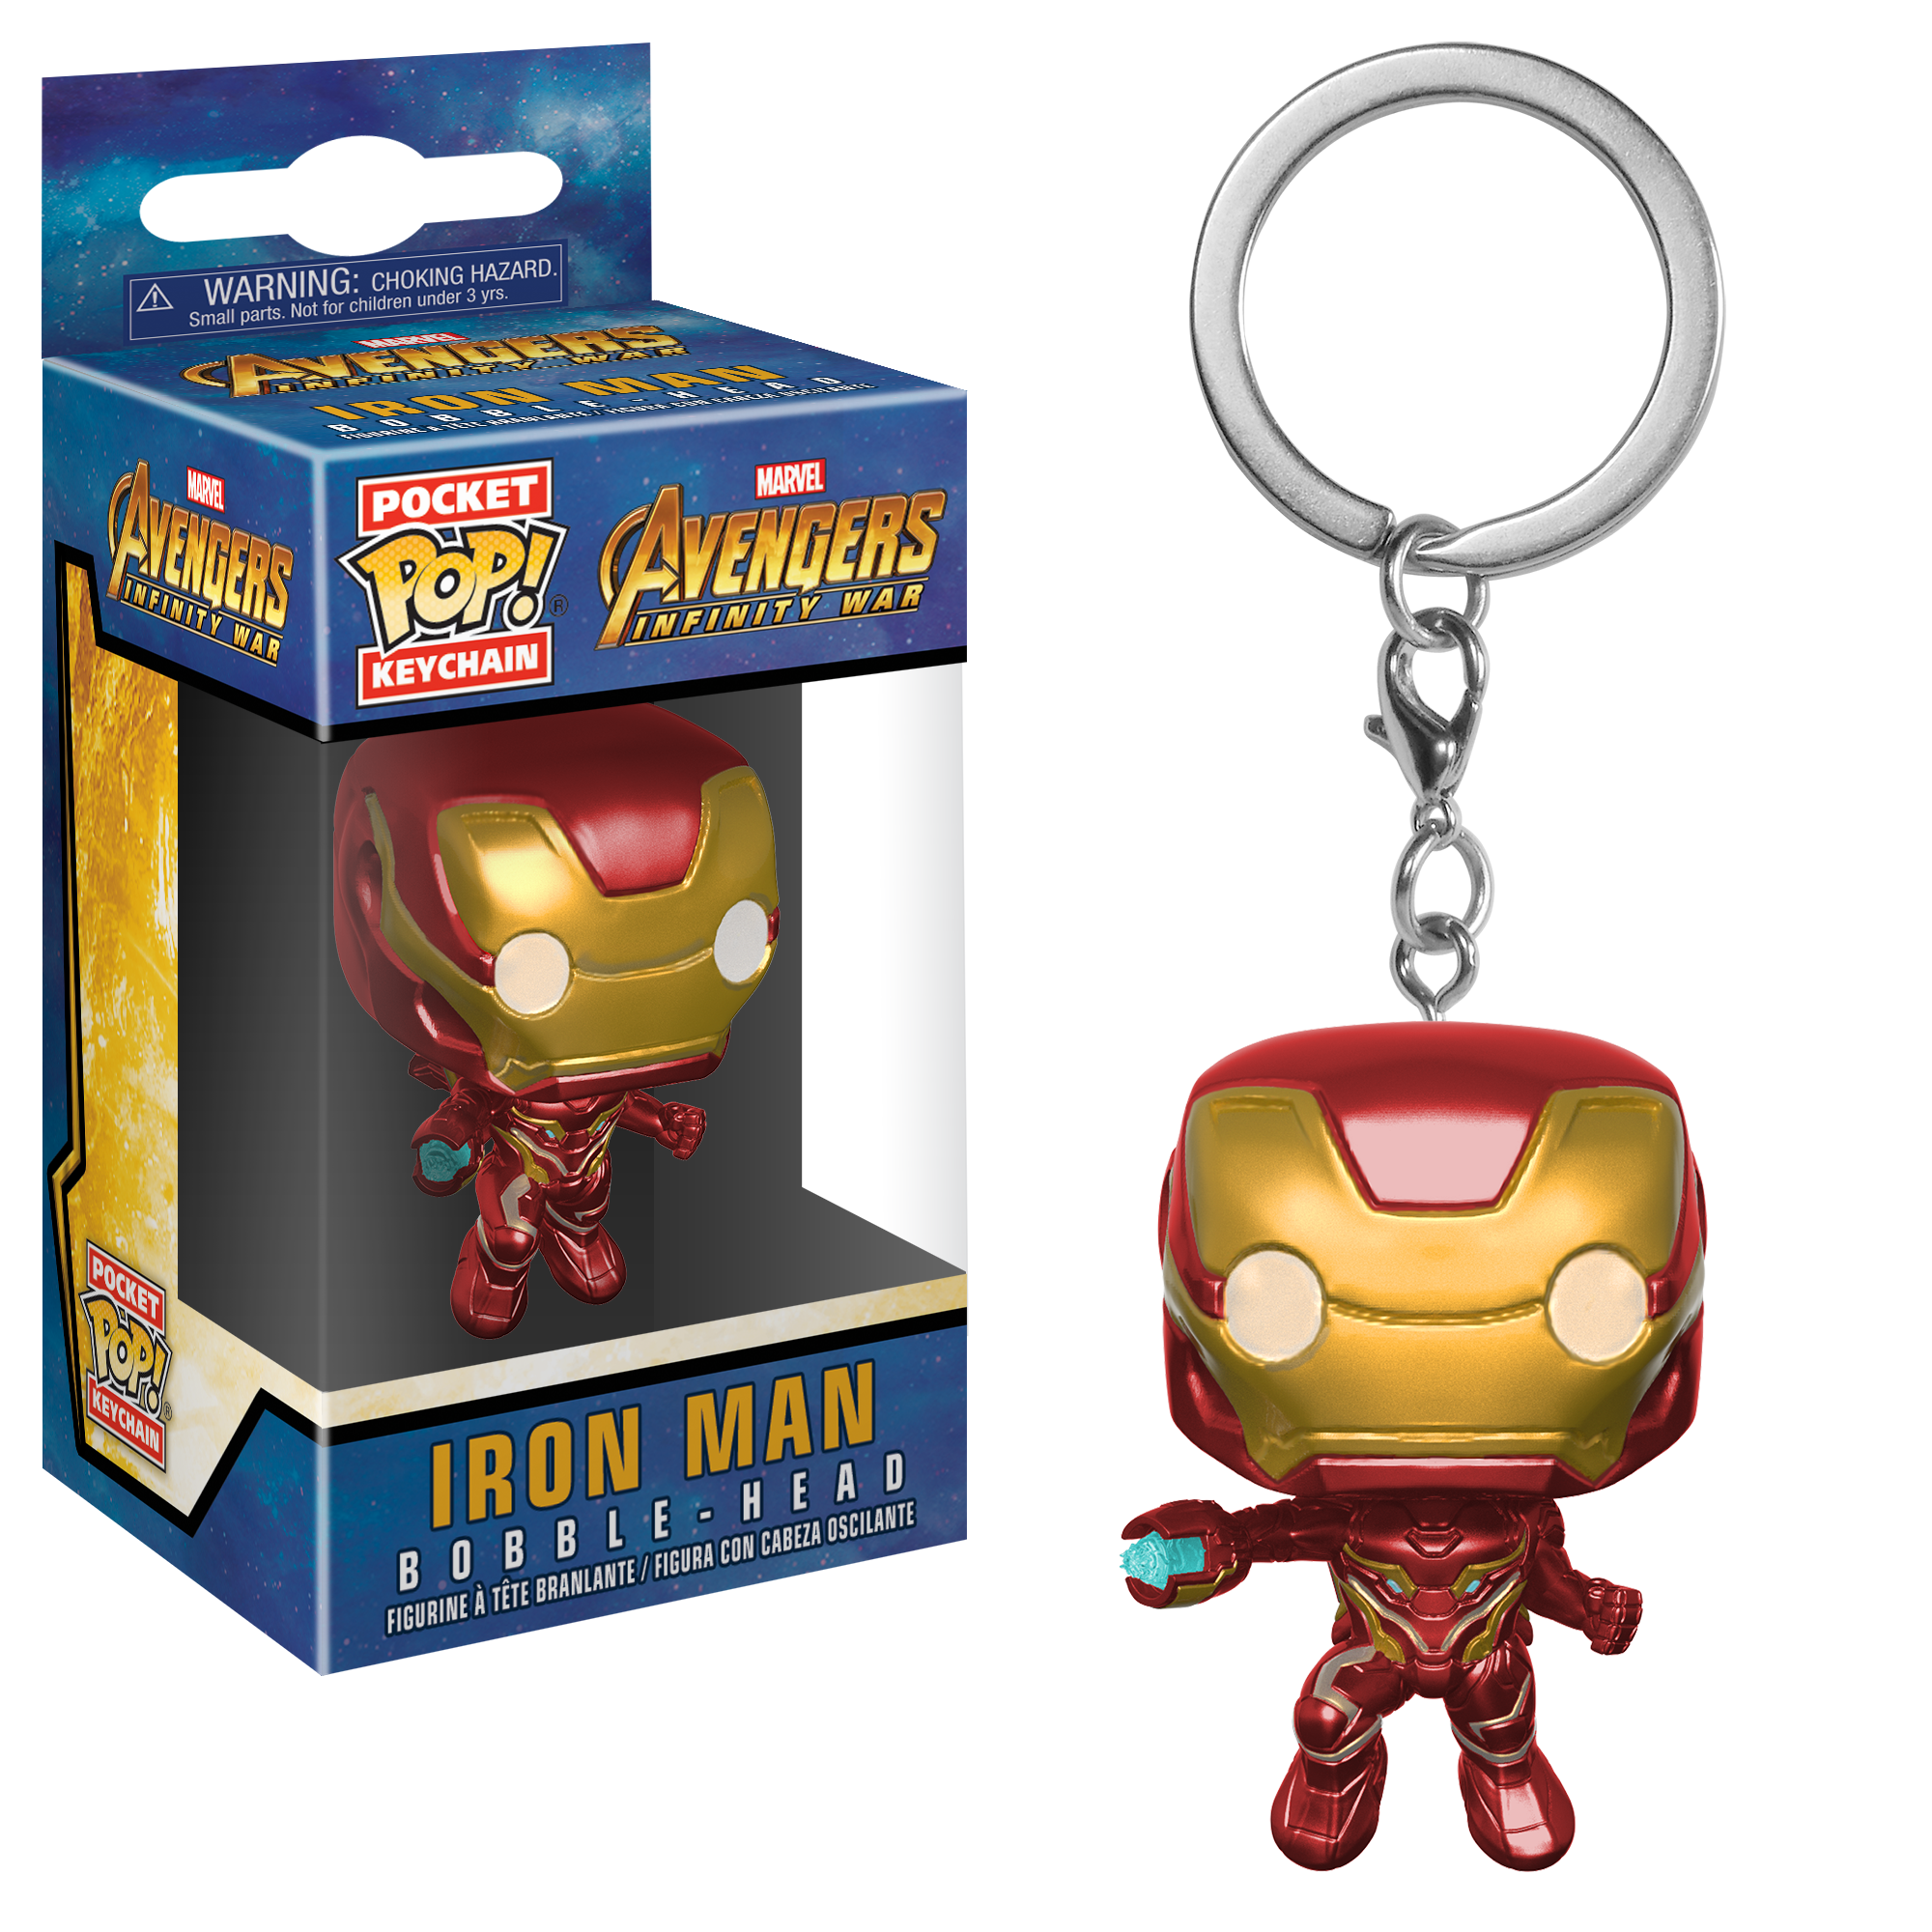 Pocket Pop! Keychain: Marvel - Avengers: Infinity War - Iron Man